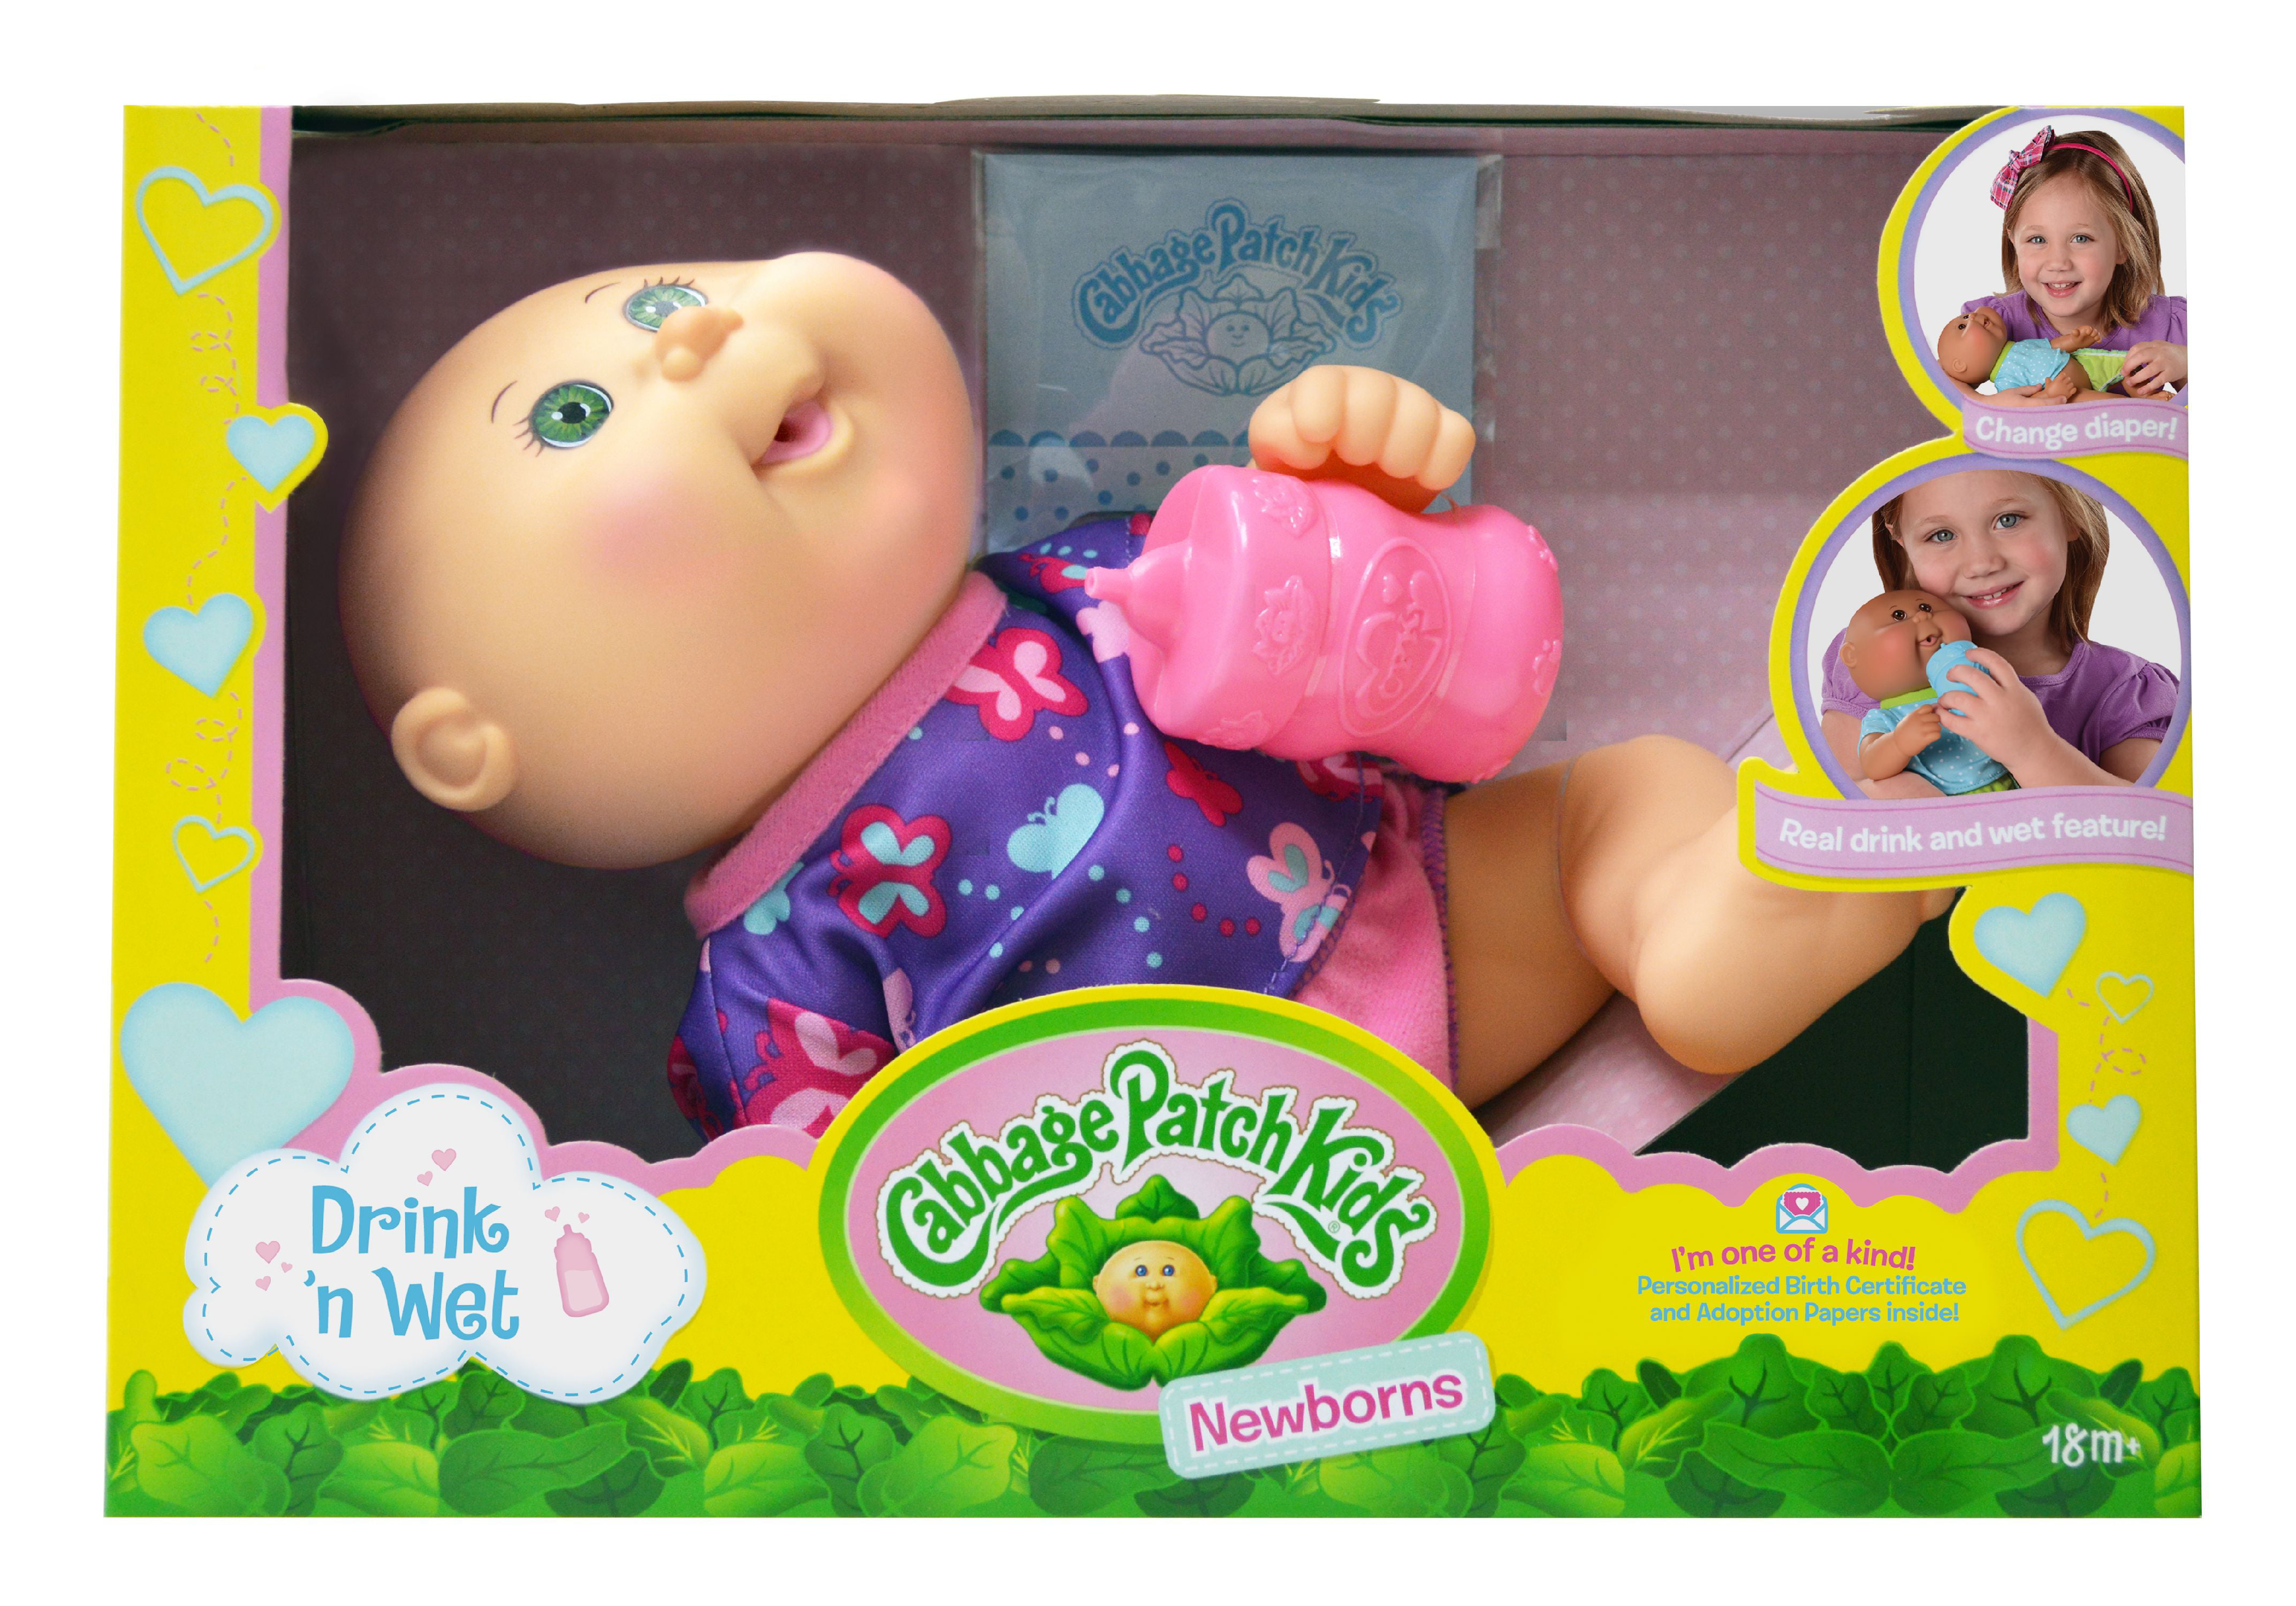 Cabbage Patch Kids Drink N' Wet Newborn Doll by WICKED COOL TOYS, LLC